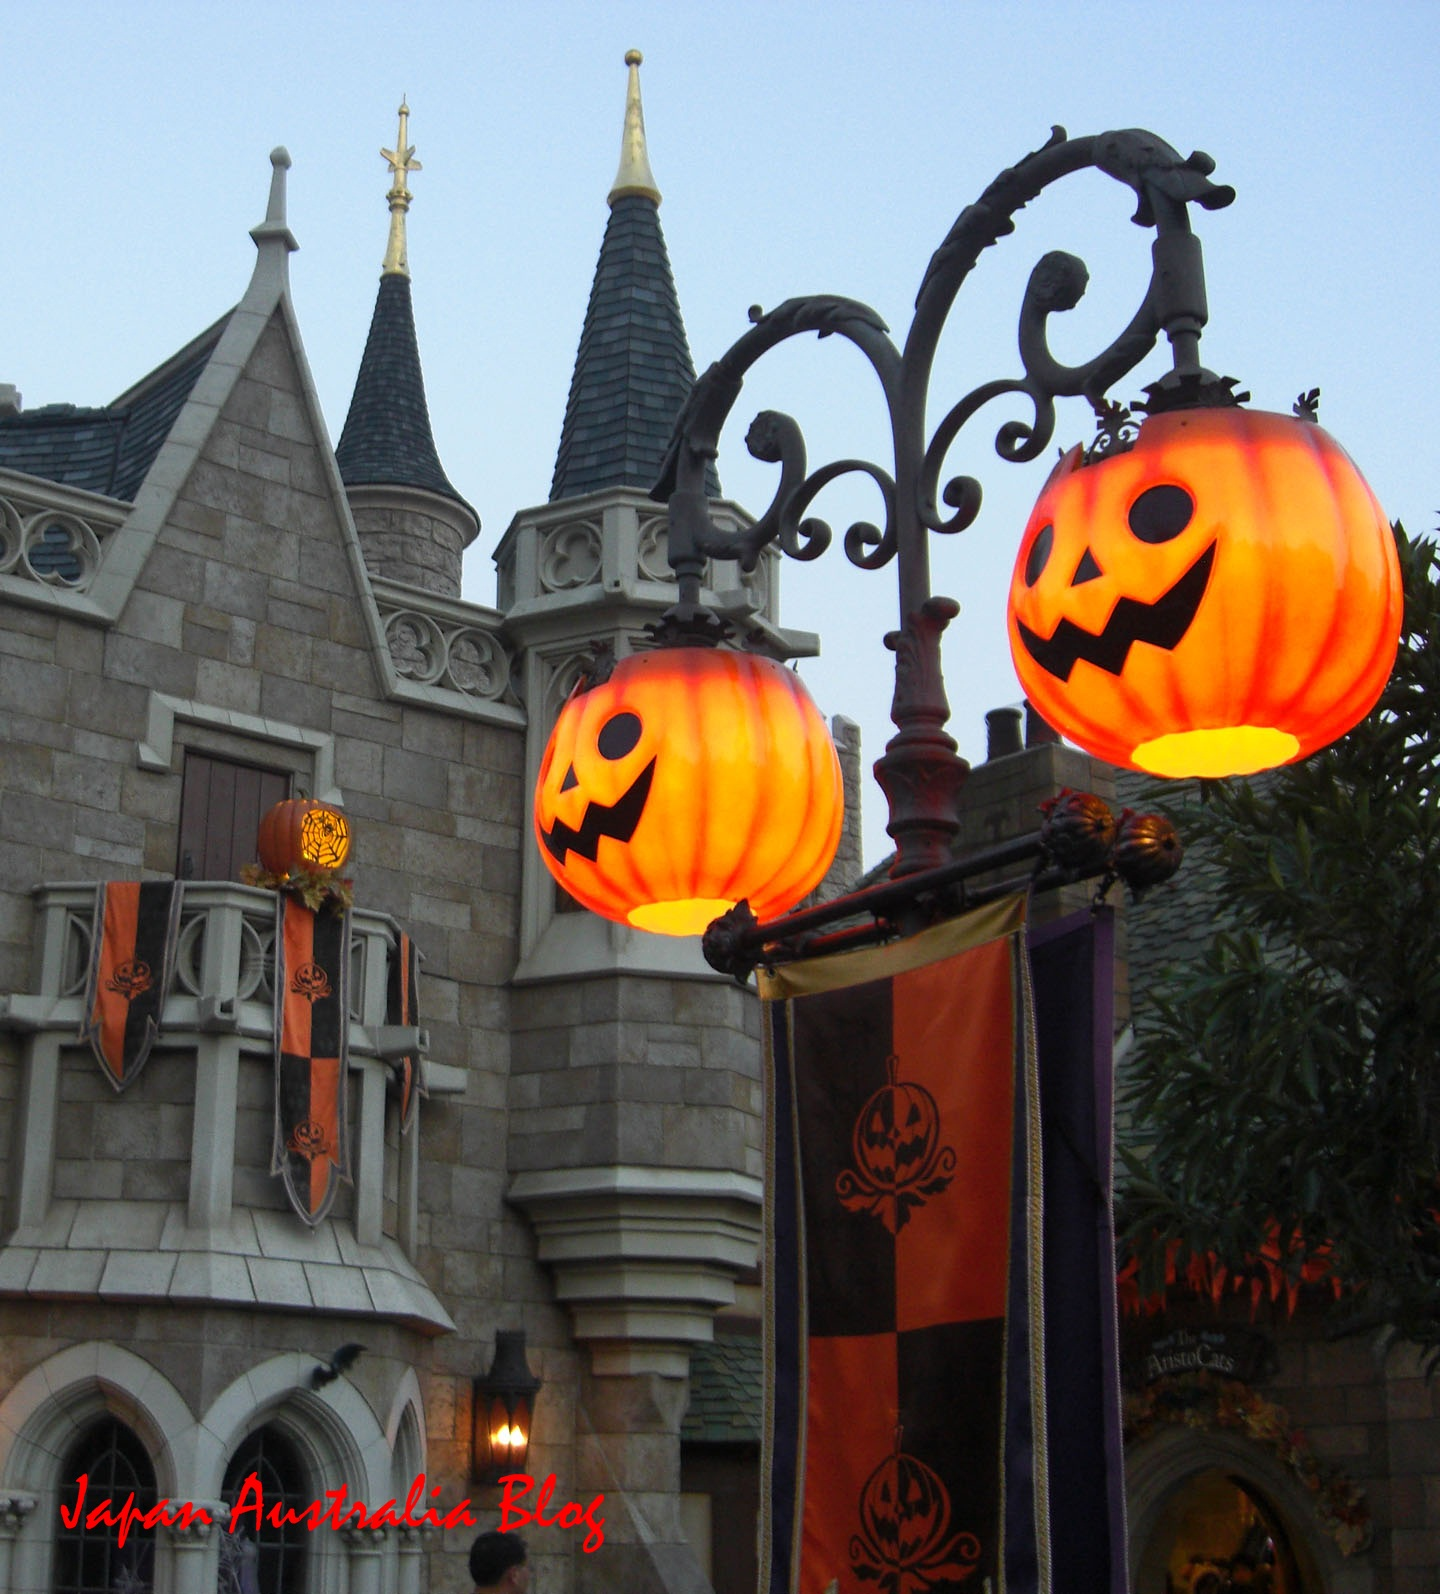 in popularity with more and more cities towns shopping centers and theme parks displaying colourful halloween decorations and having fun events